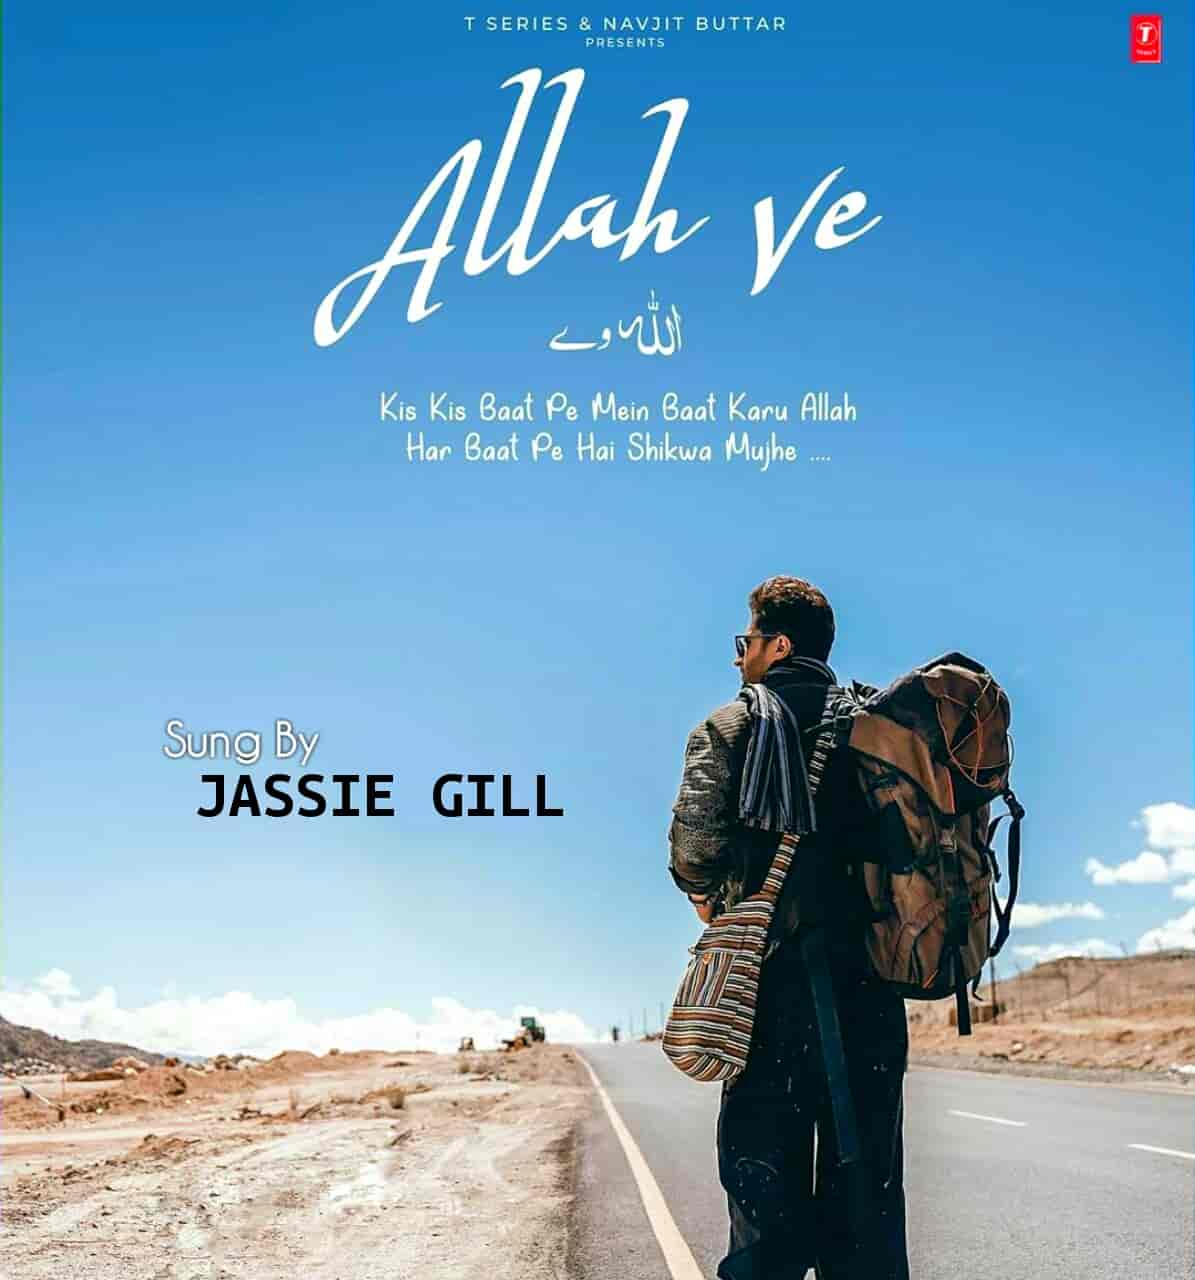 Allah Ve Punjabi Song Images By Jassie Gill